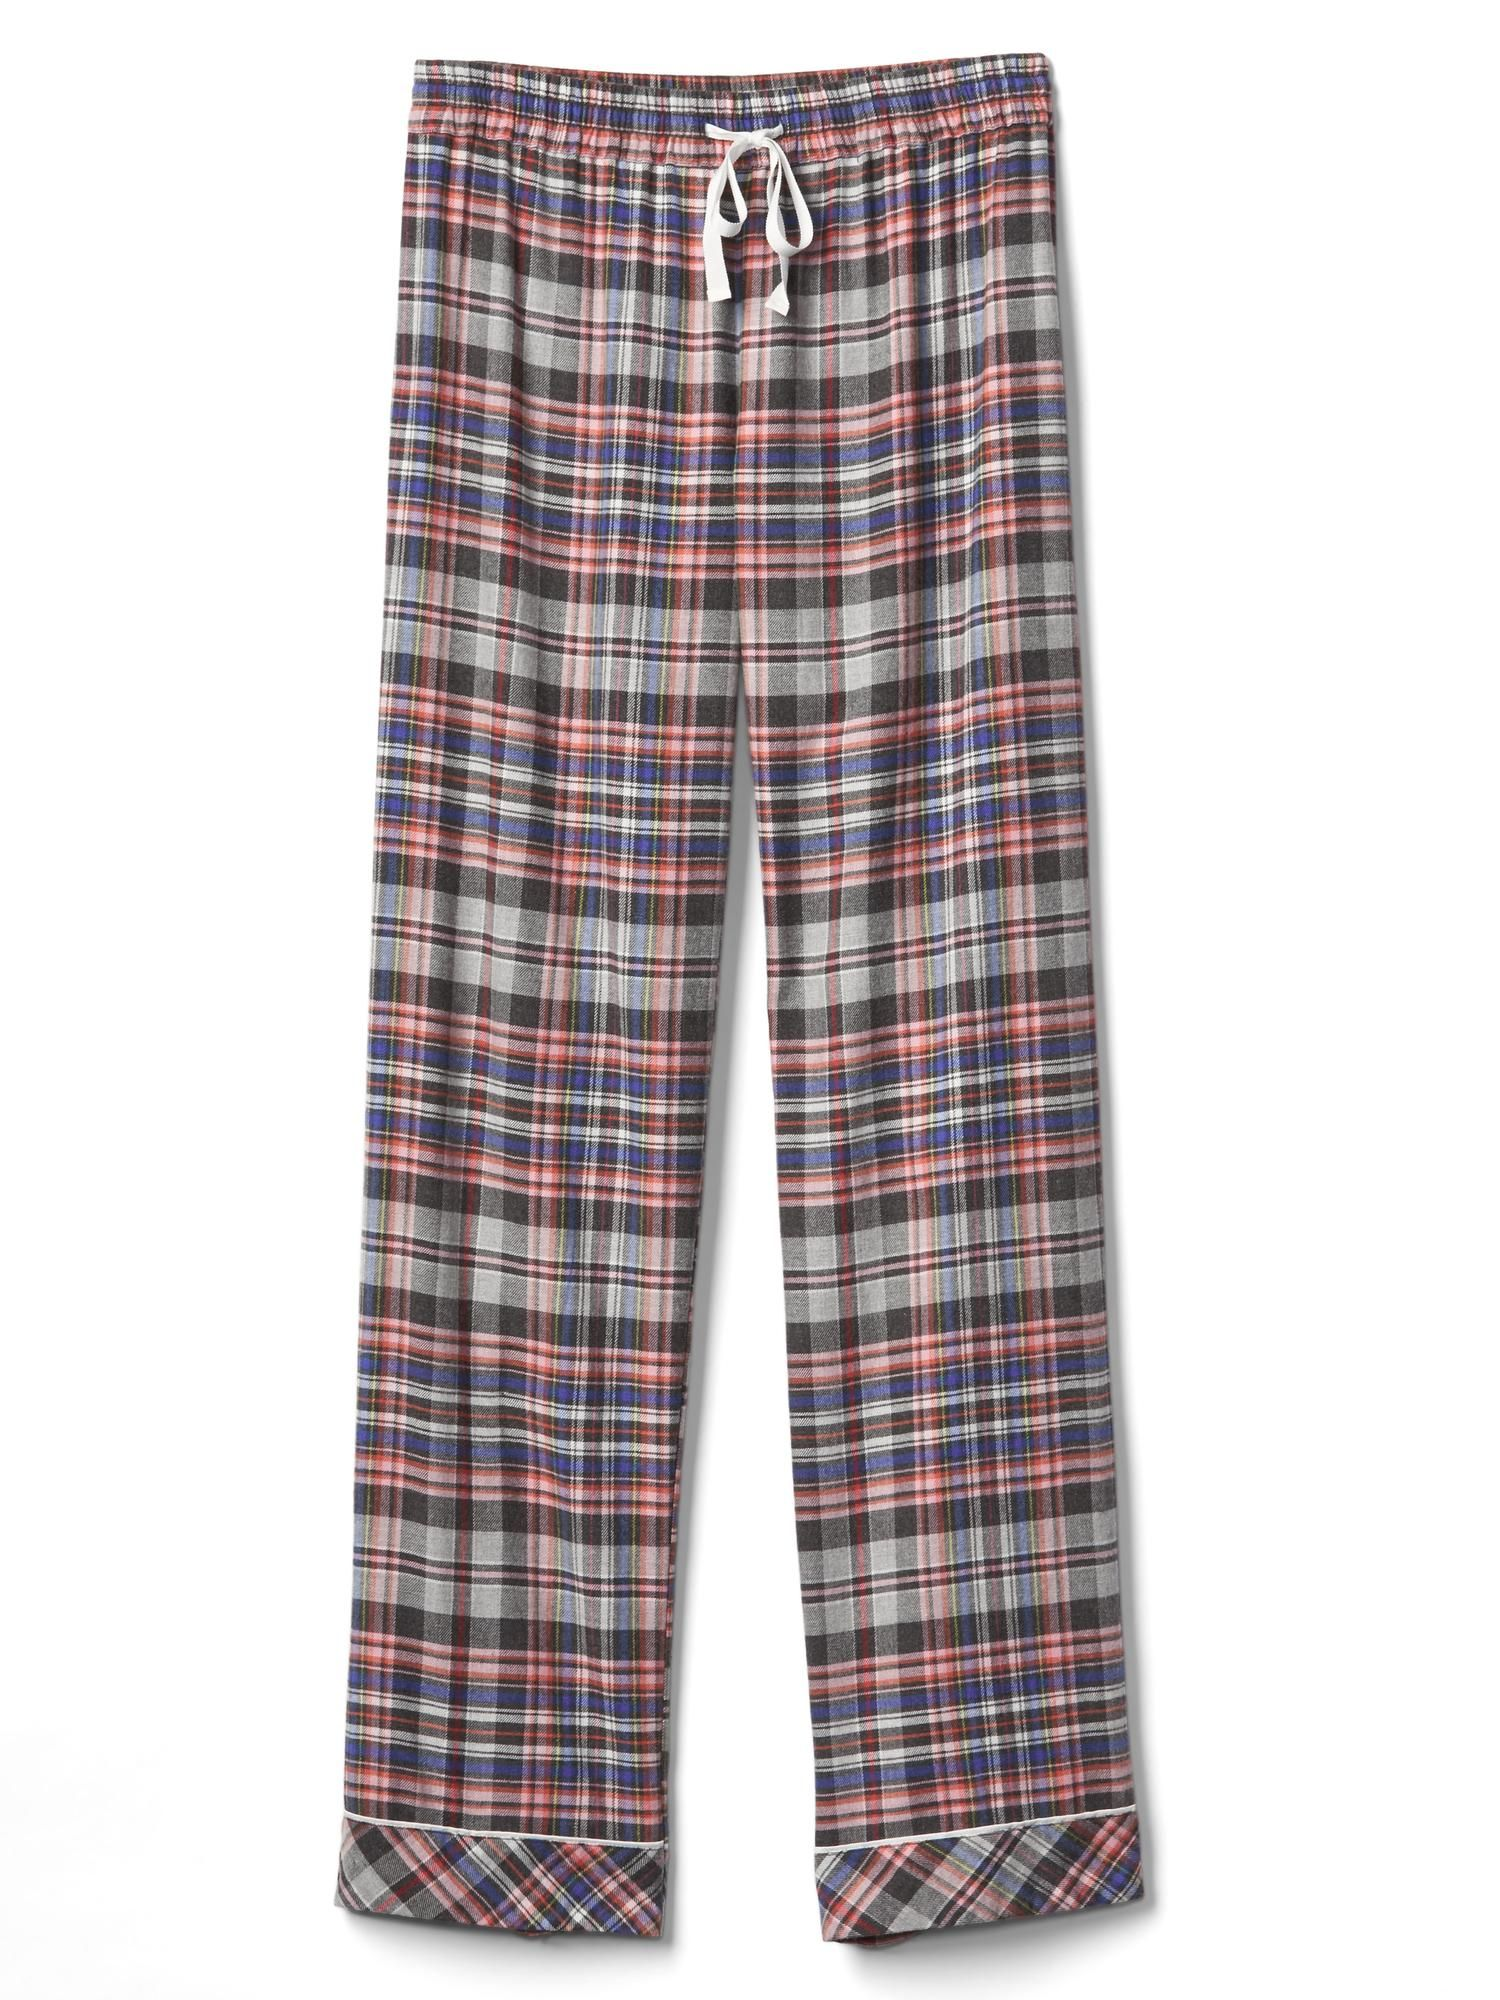 PJ pants! I need a new pair. Size small- maybe extra small.